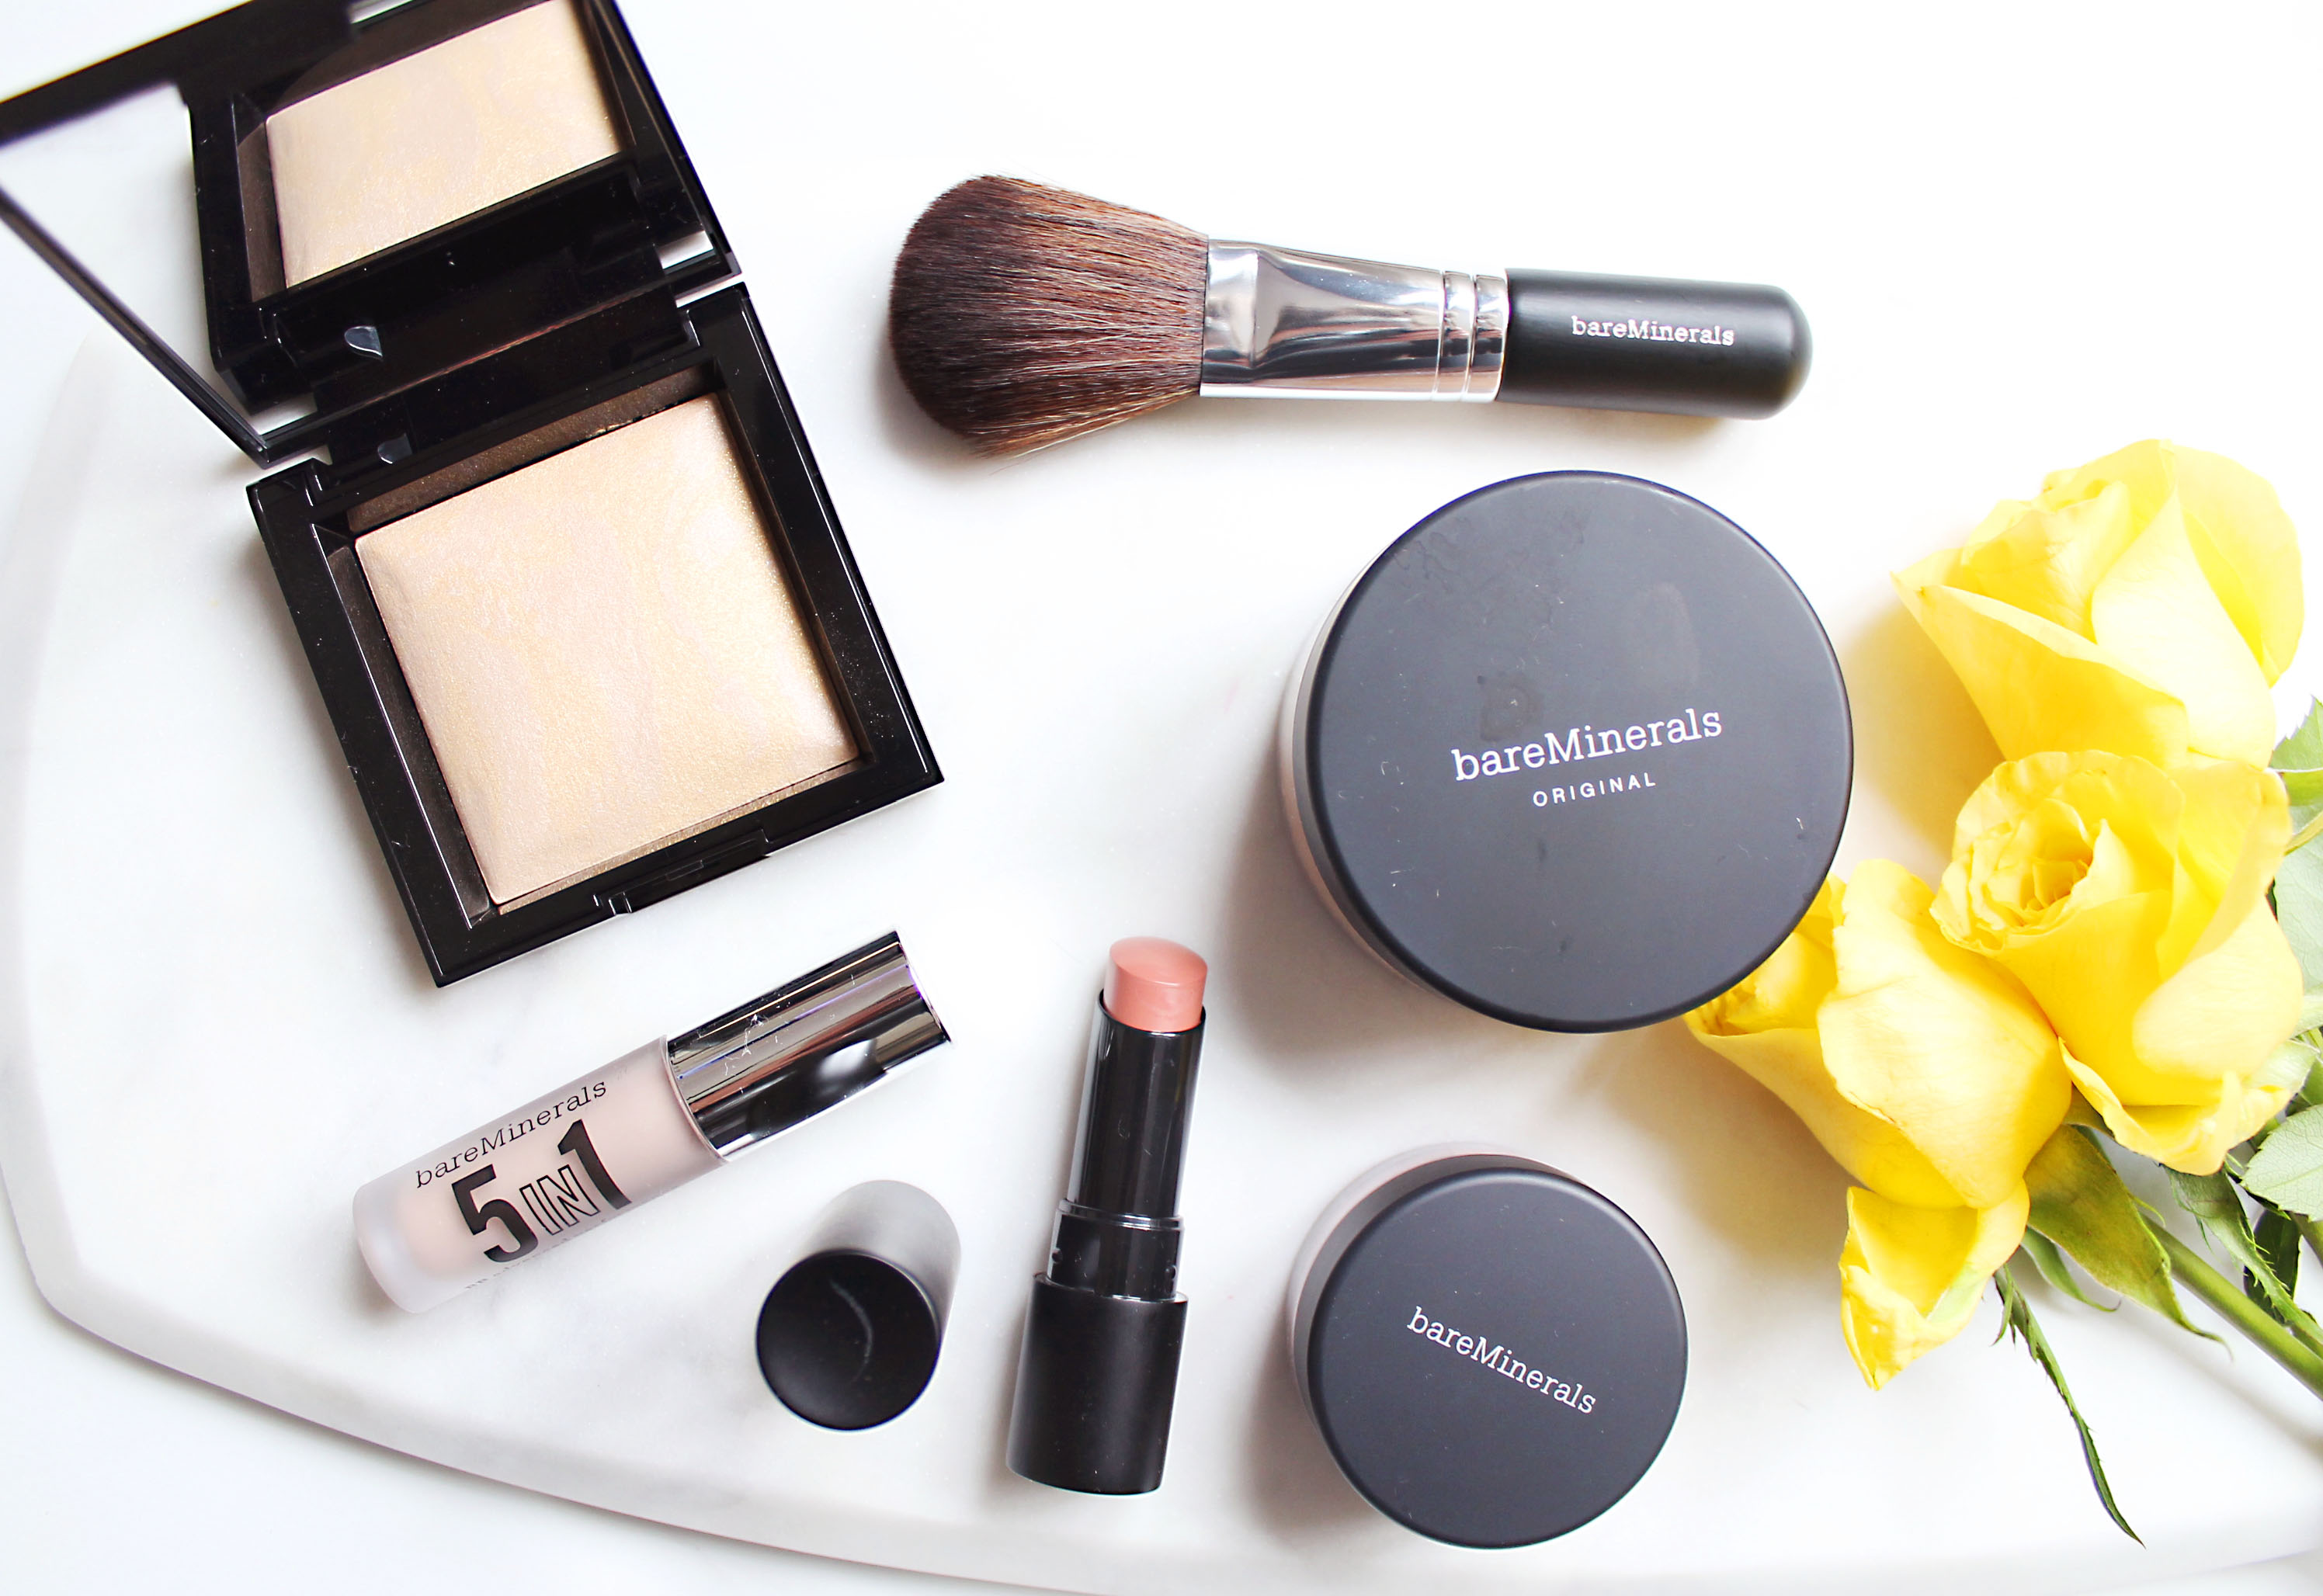 5 Minute Get Glowing Makeup With bareMinerals - Through Mona's Eyes